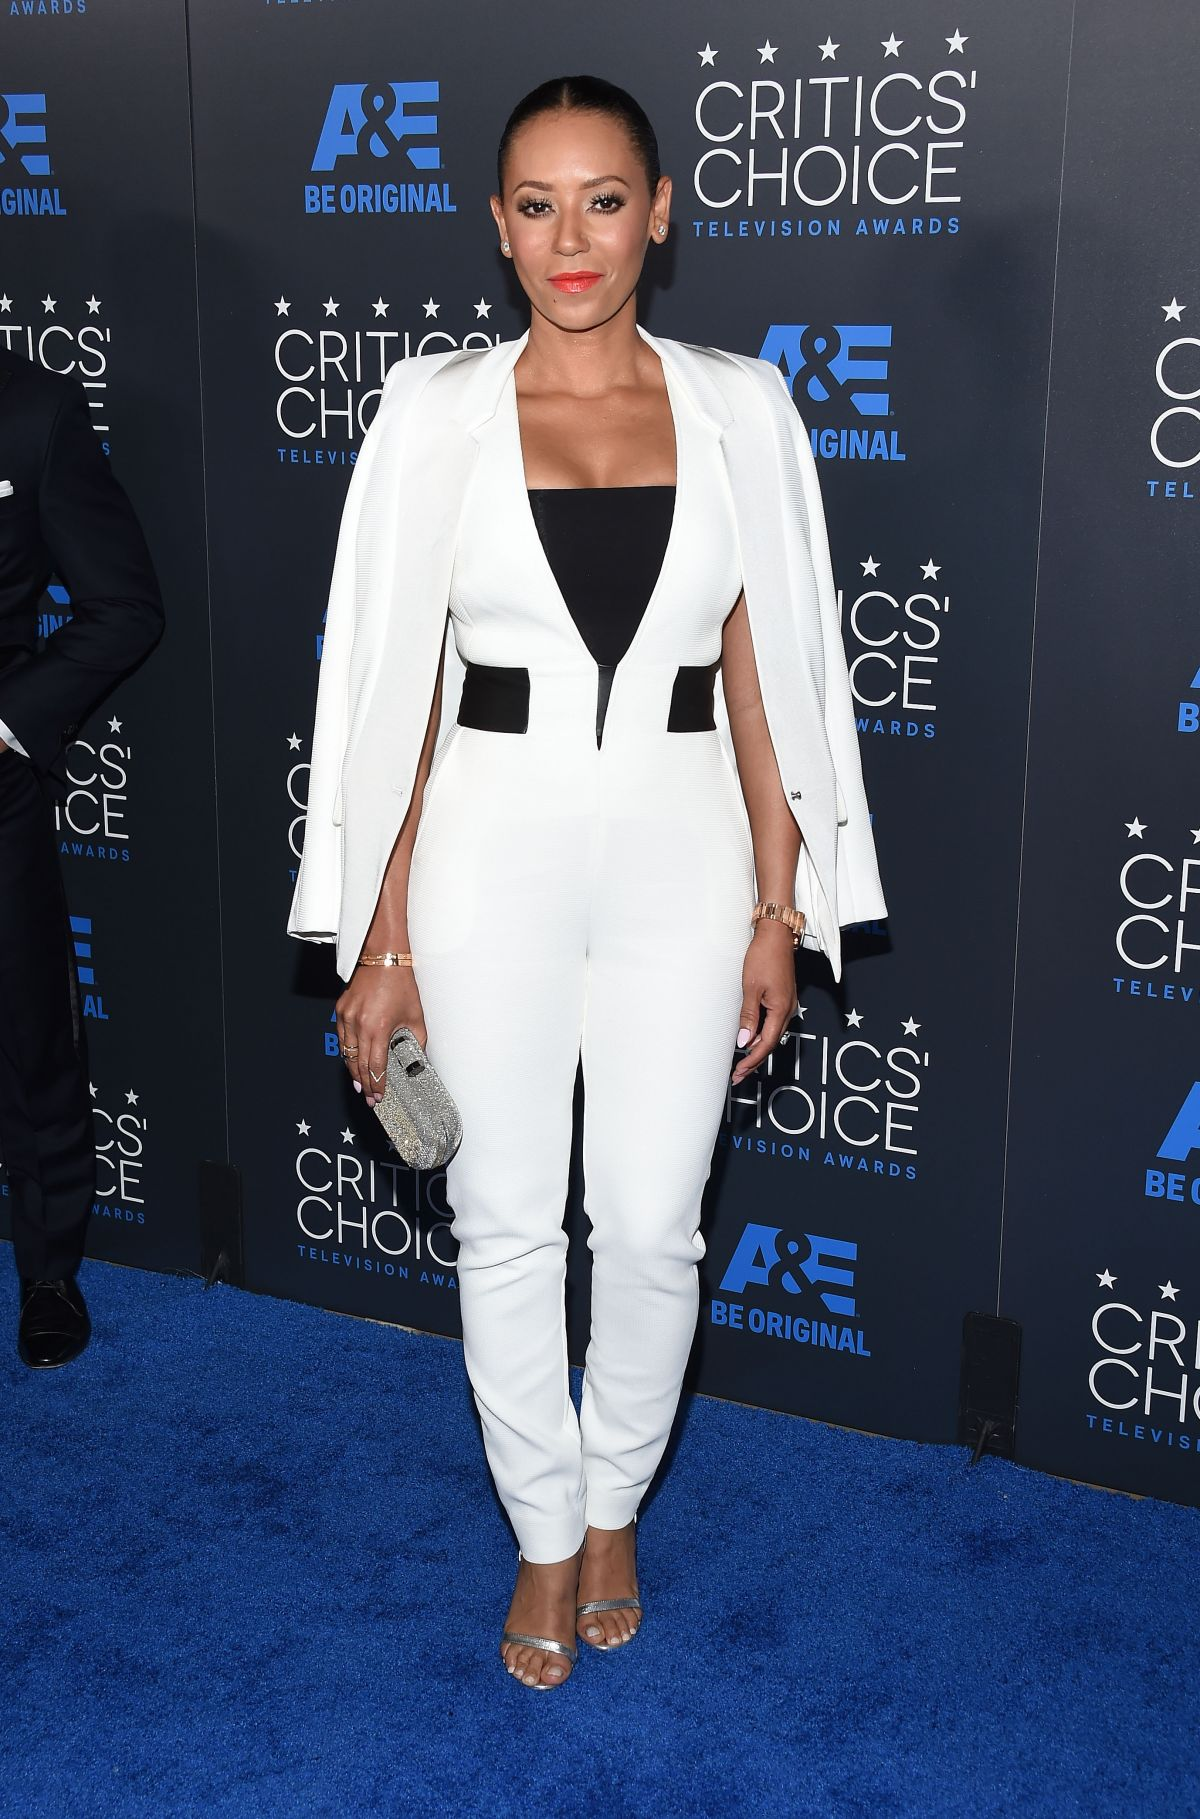 melanie-brown-at-5th-annual-critics-choice-television-awards-in-beverly-hills_1